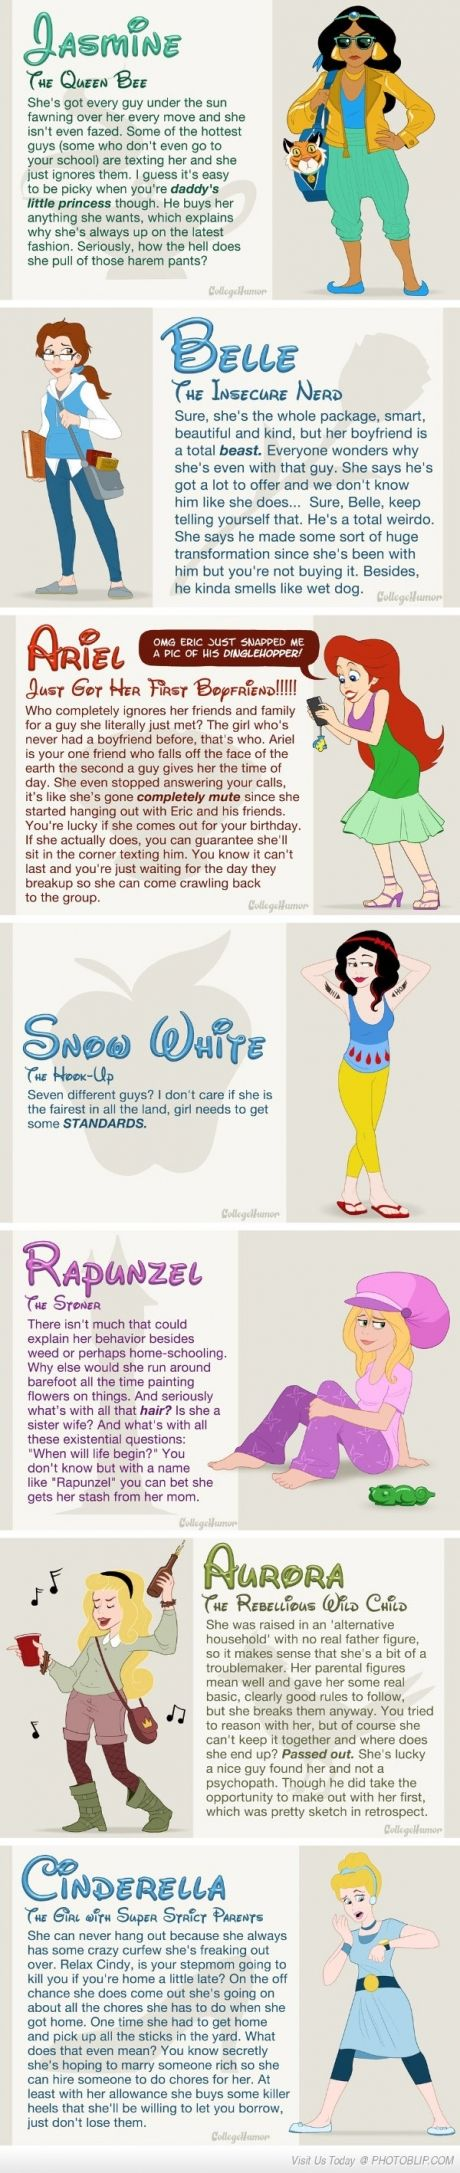 If Disney princesses went to high school